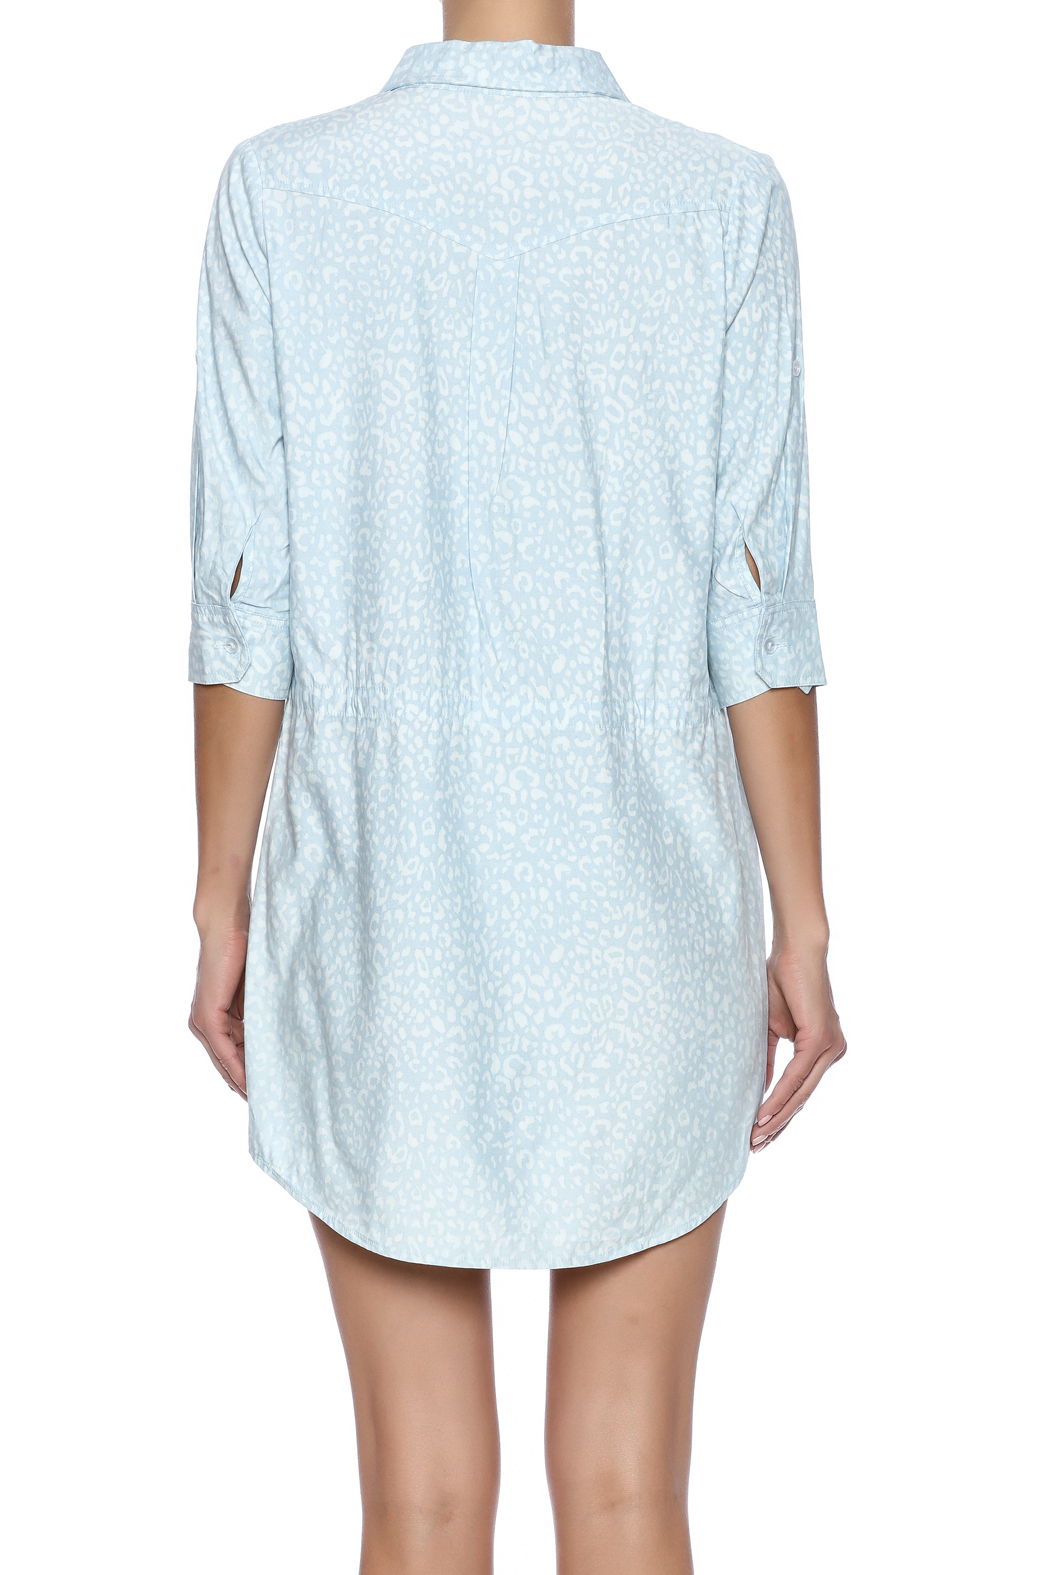 Buddy Love Orlando Shirt Dress - Back Cropped Image